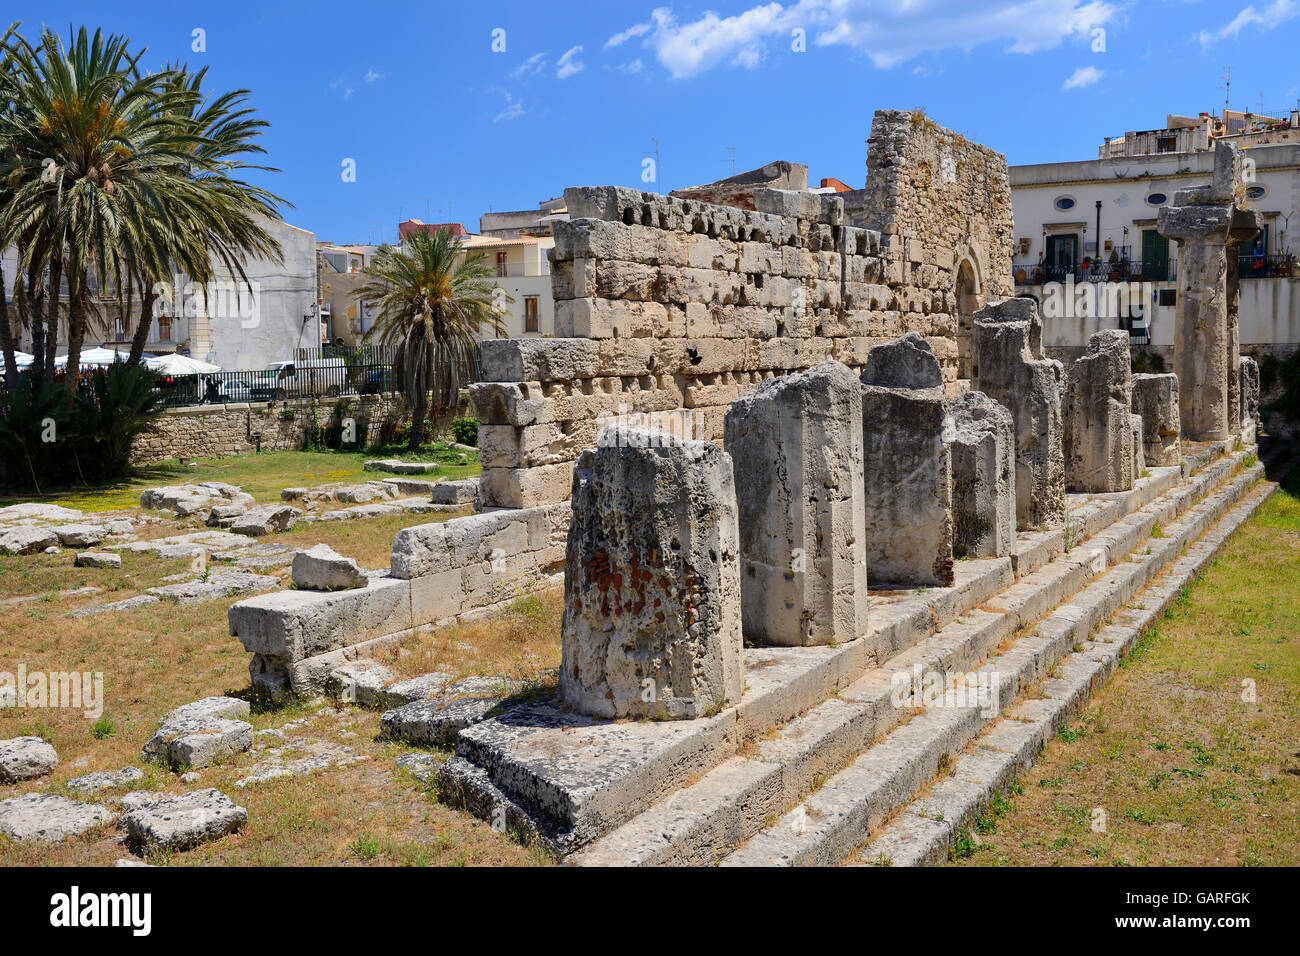 Temple of Apollo in Ortygia, Syracuse, Sicily, Italy - Stock Image